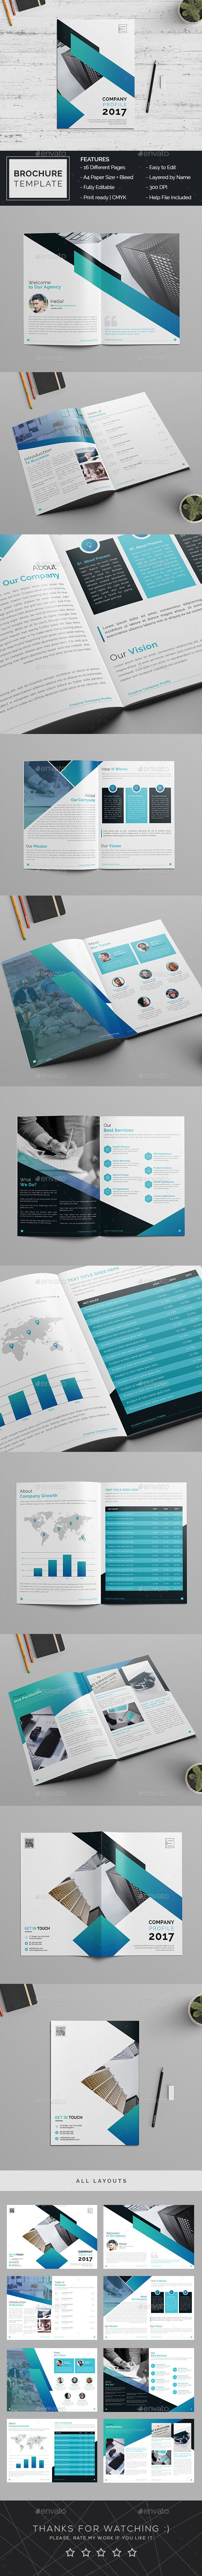 Company Profile Brochure Template — Photoshop PSD #business plan #management • Available here → https://graphicriver.net/item/company-profile-brochure-template/20420262?ref=pxcr